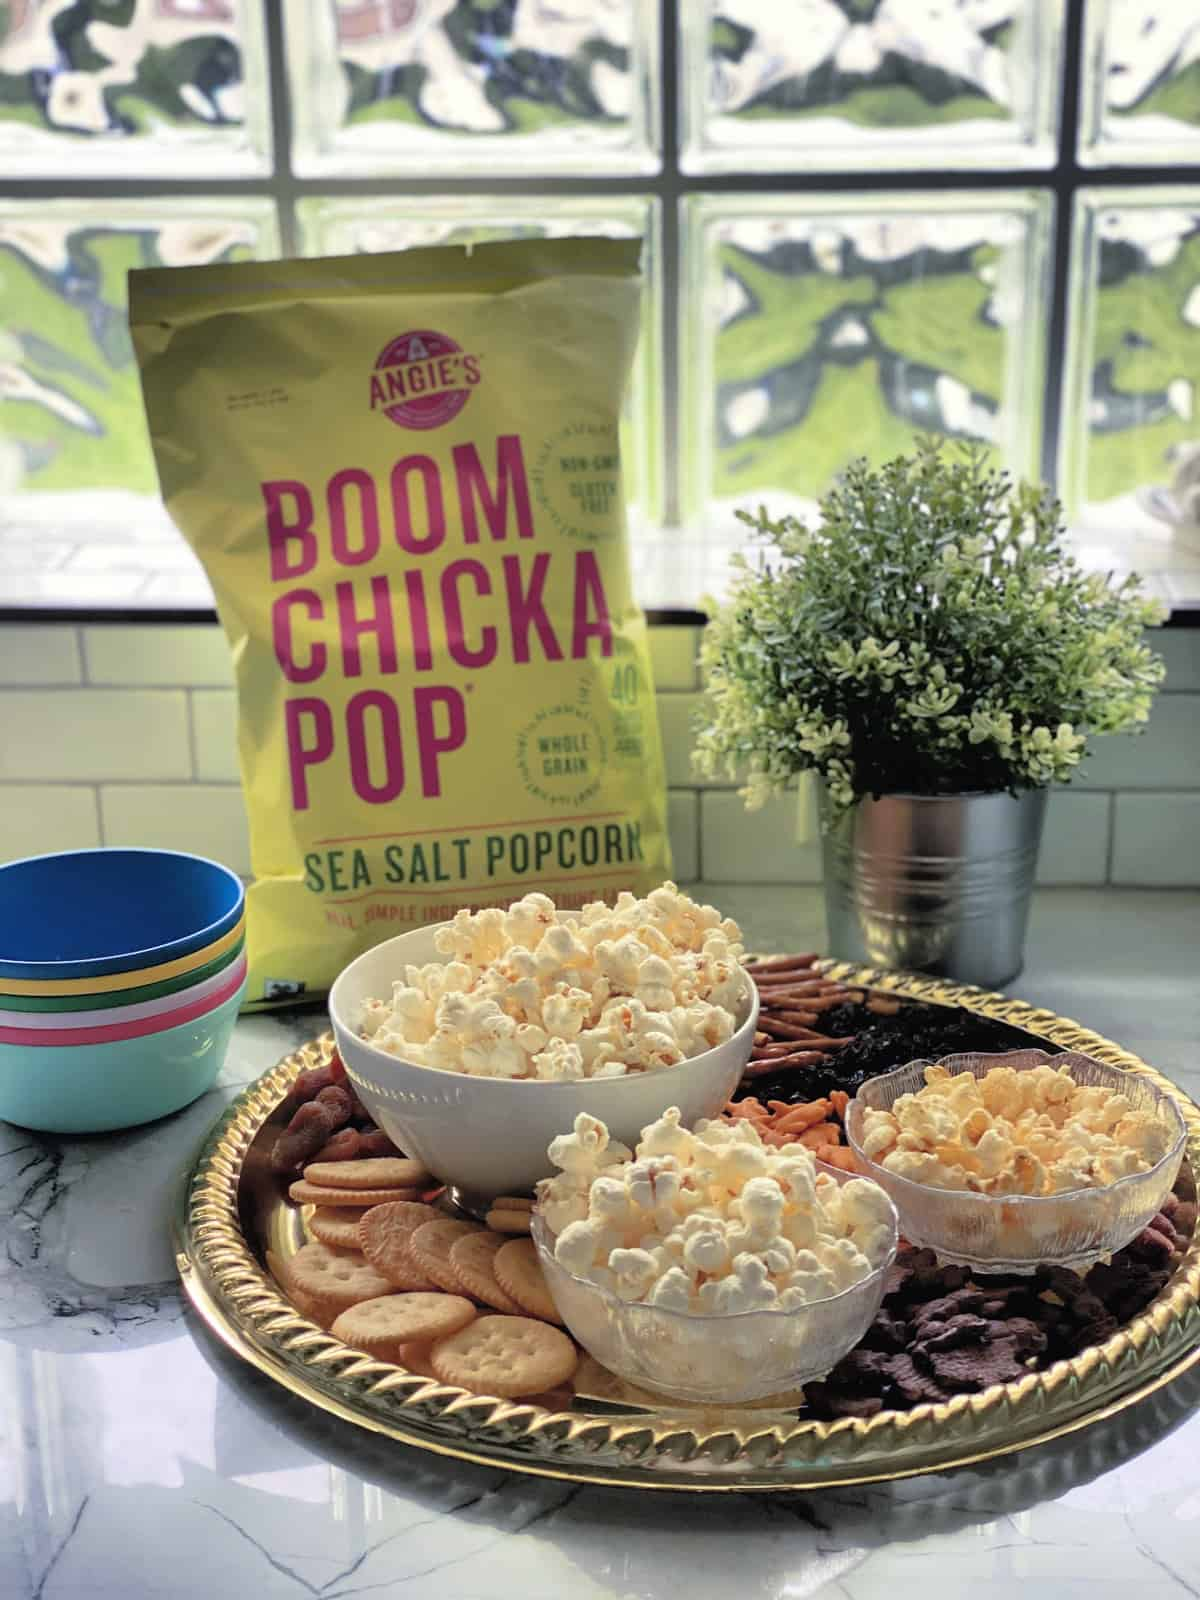 Platter with crackers, pretzels, dried fruits, and 3 bowls of popcorn in front of bag of boom chicka pop.